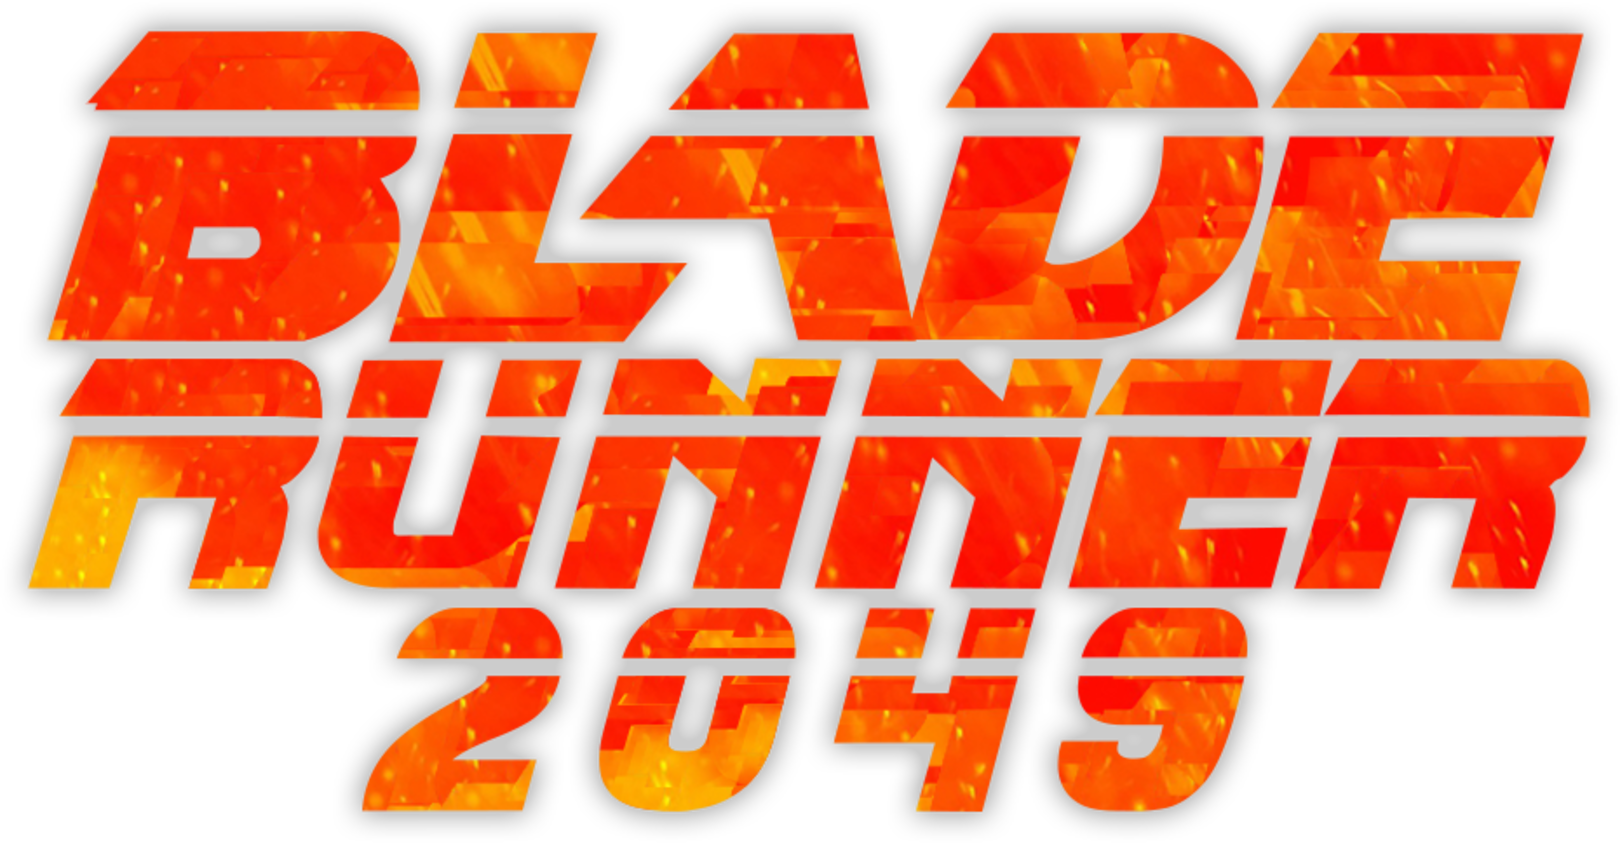 Blade runner 2049 png logo. Get tickets